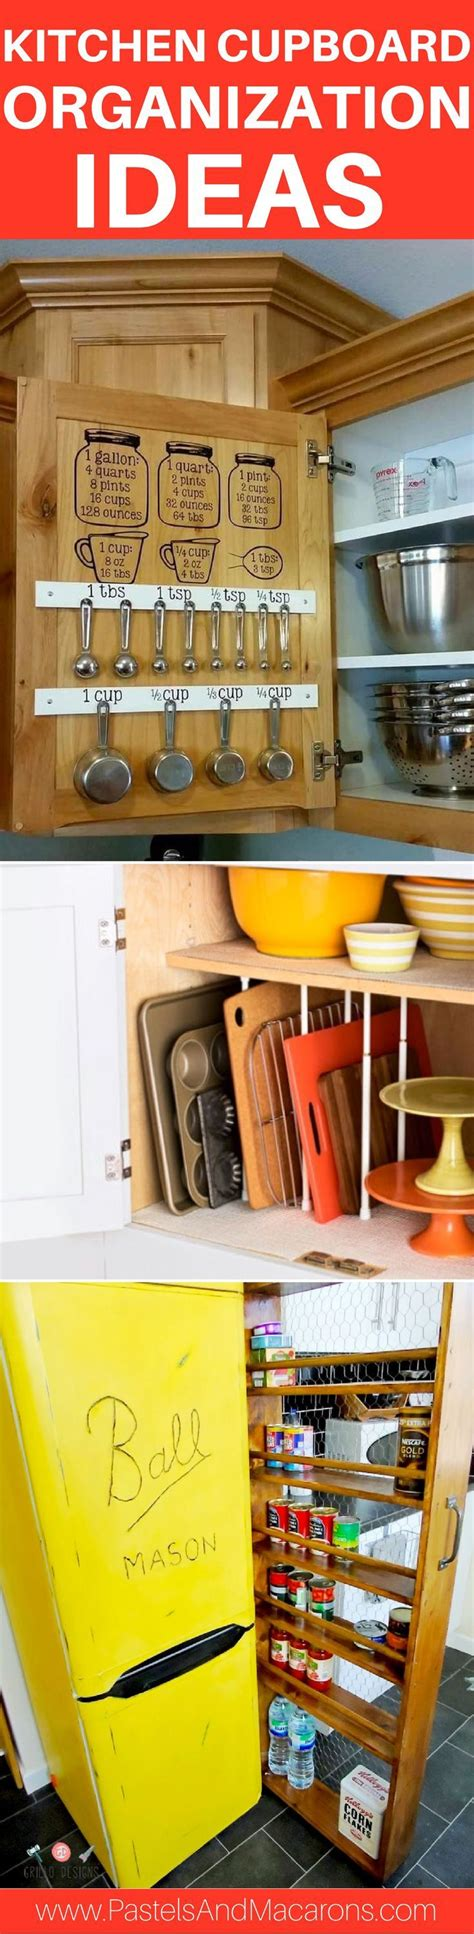 kitchen cupboard organizing ideas amazing kitchen cupboard organization ideas you must try diy of tips for organizing your